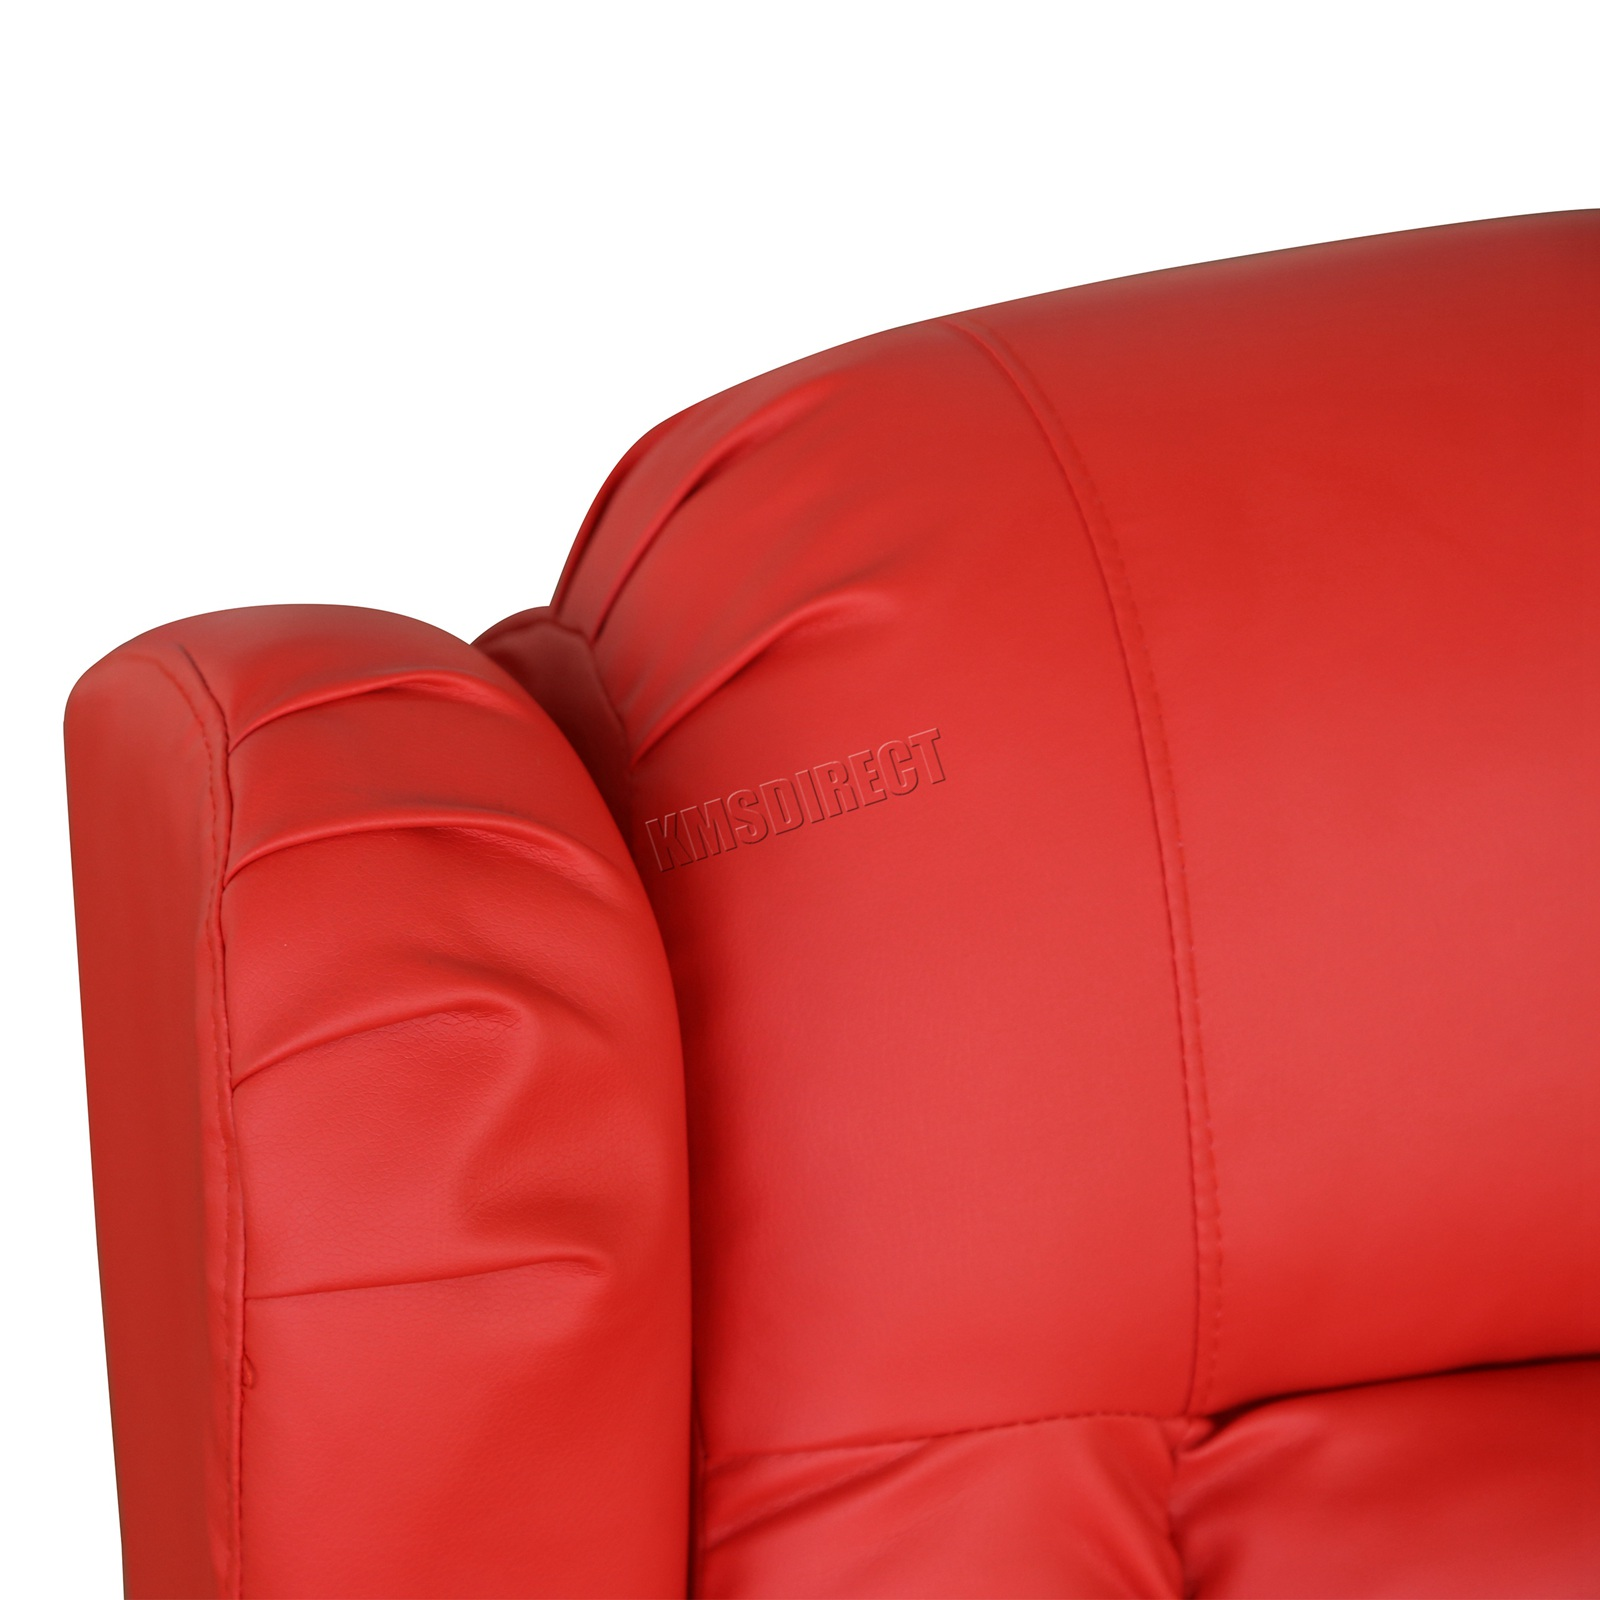 WESTWOOD-Leather-Recliner-Armchair-Swivel-Heated-chair-Massage-Gaming-Chair thumbnail 55